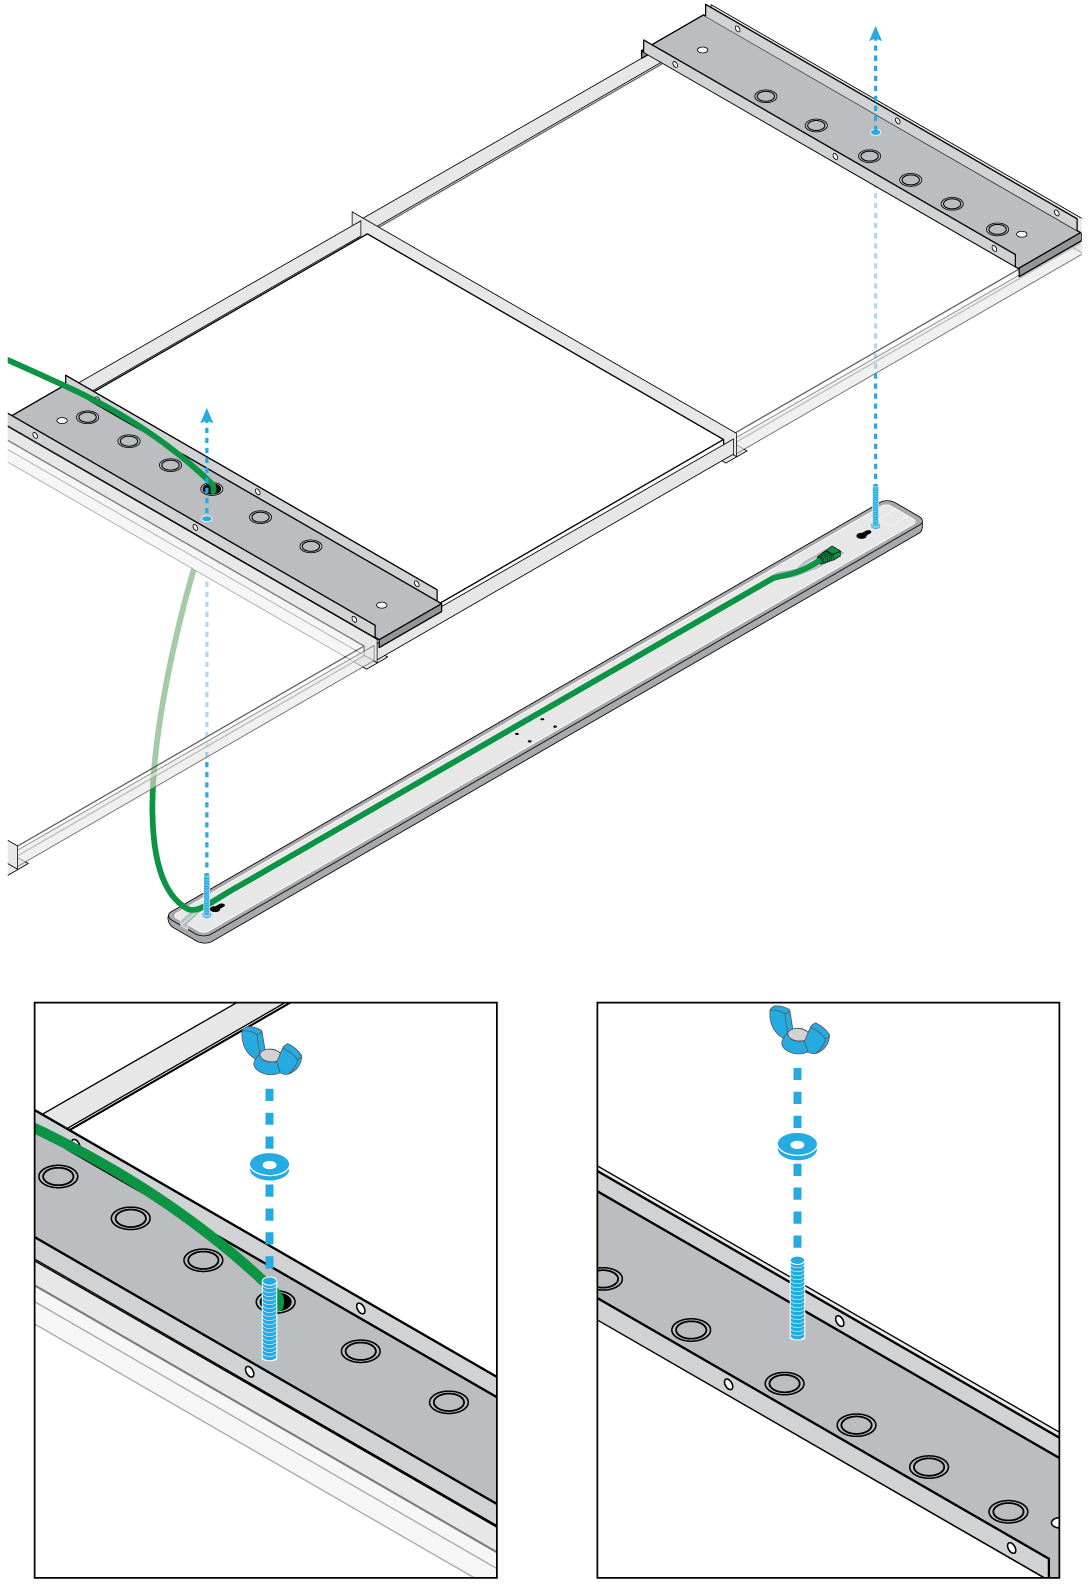 Illustration showing how to attach the MXA710-4FT to 2 A710-TBs. Attach the 2 wing nuts to the bolts to secure the mic to the ceiling tiles.